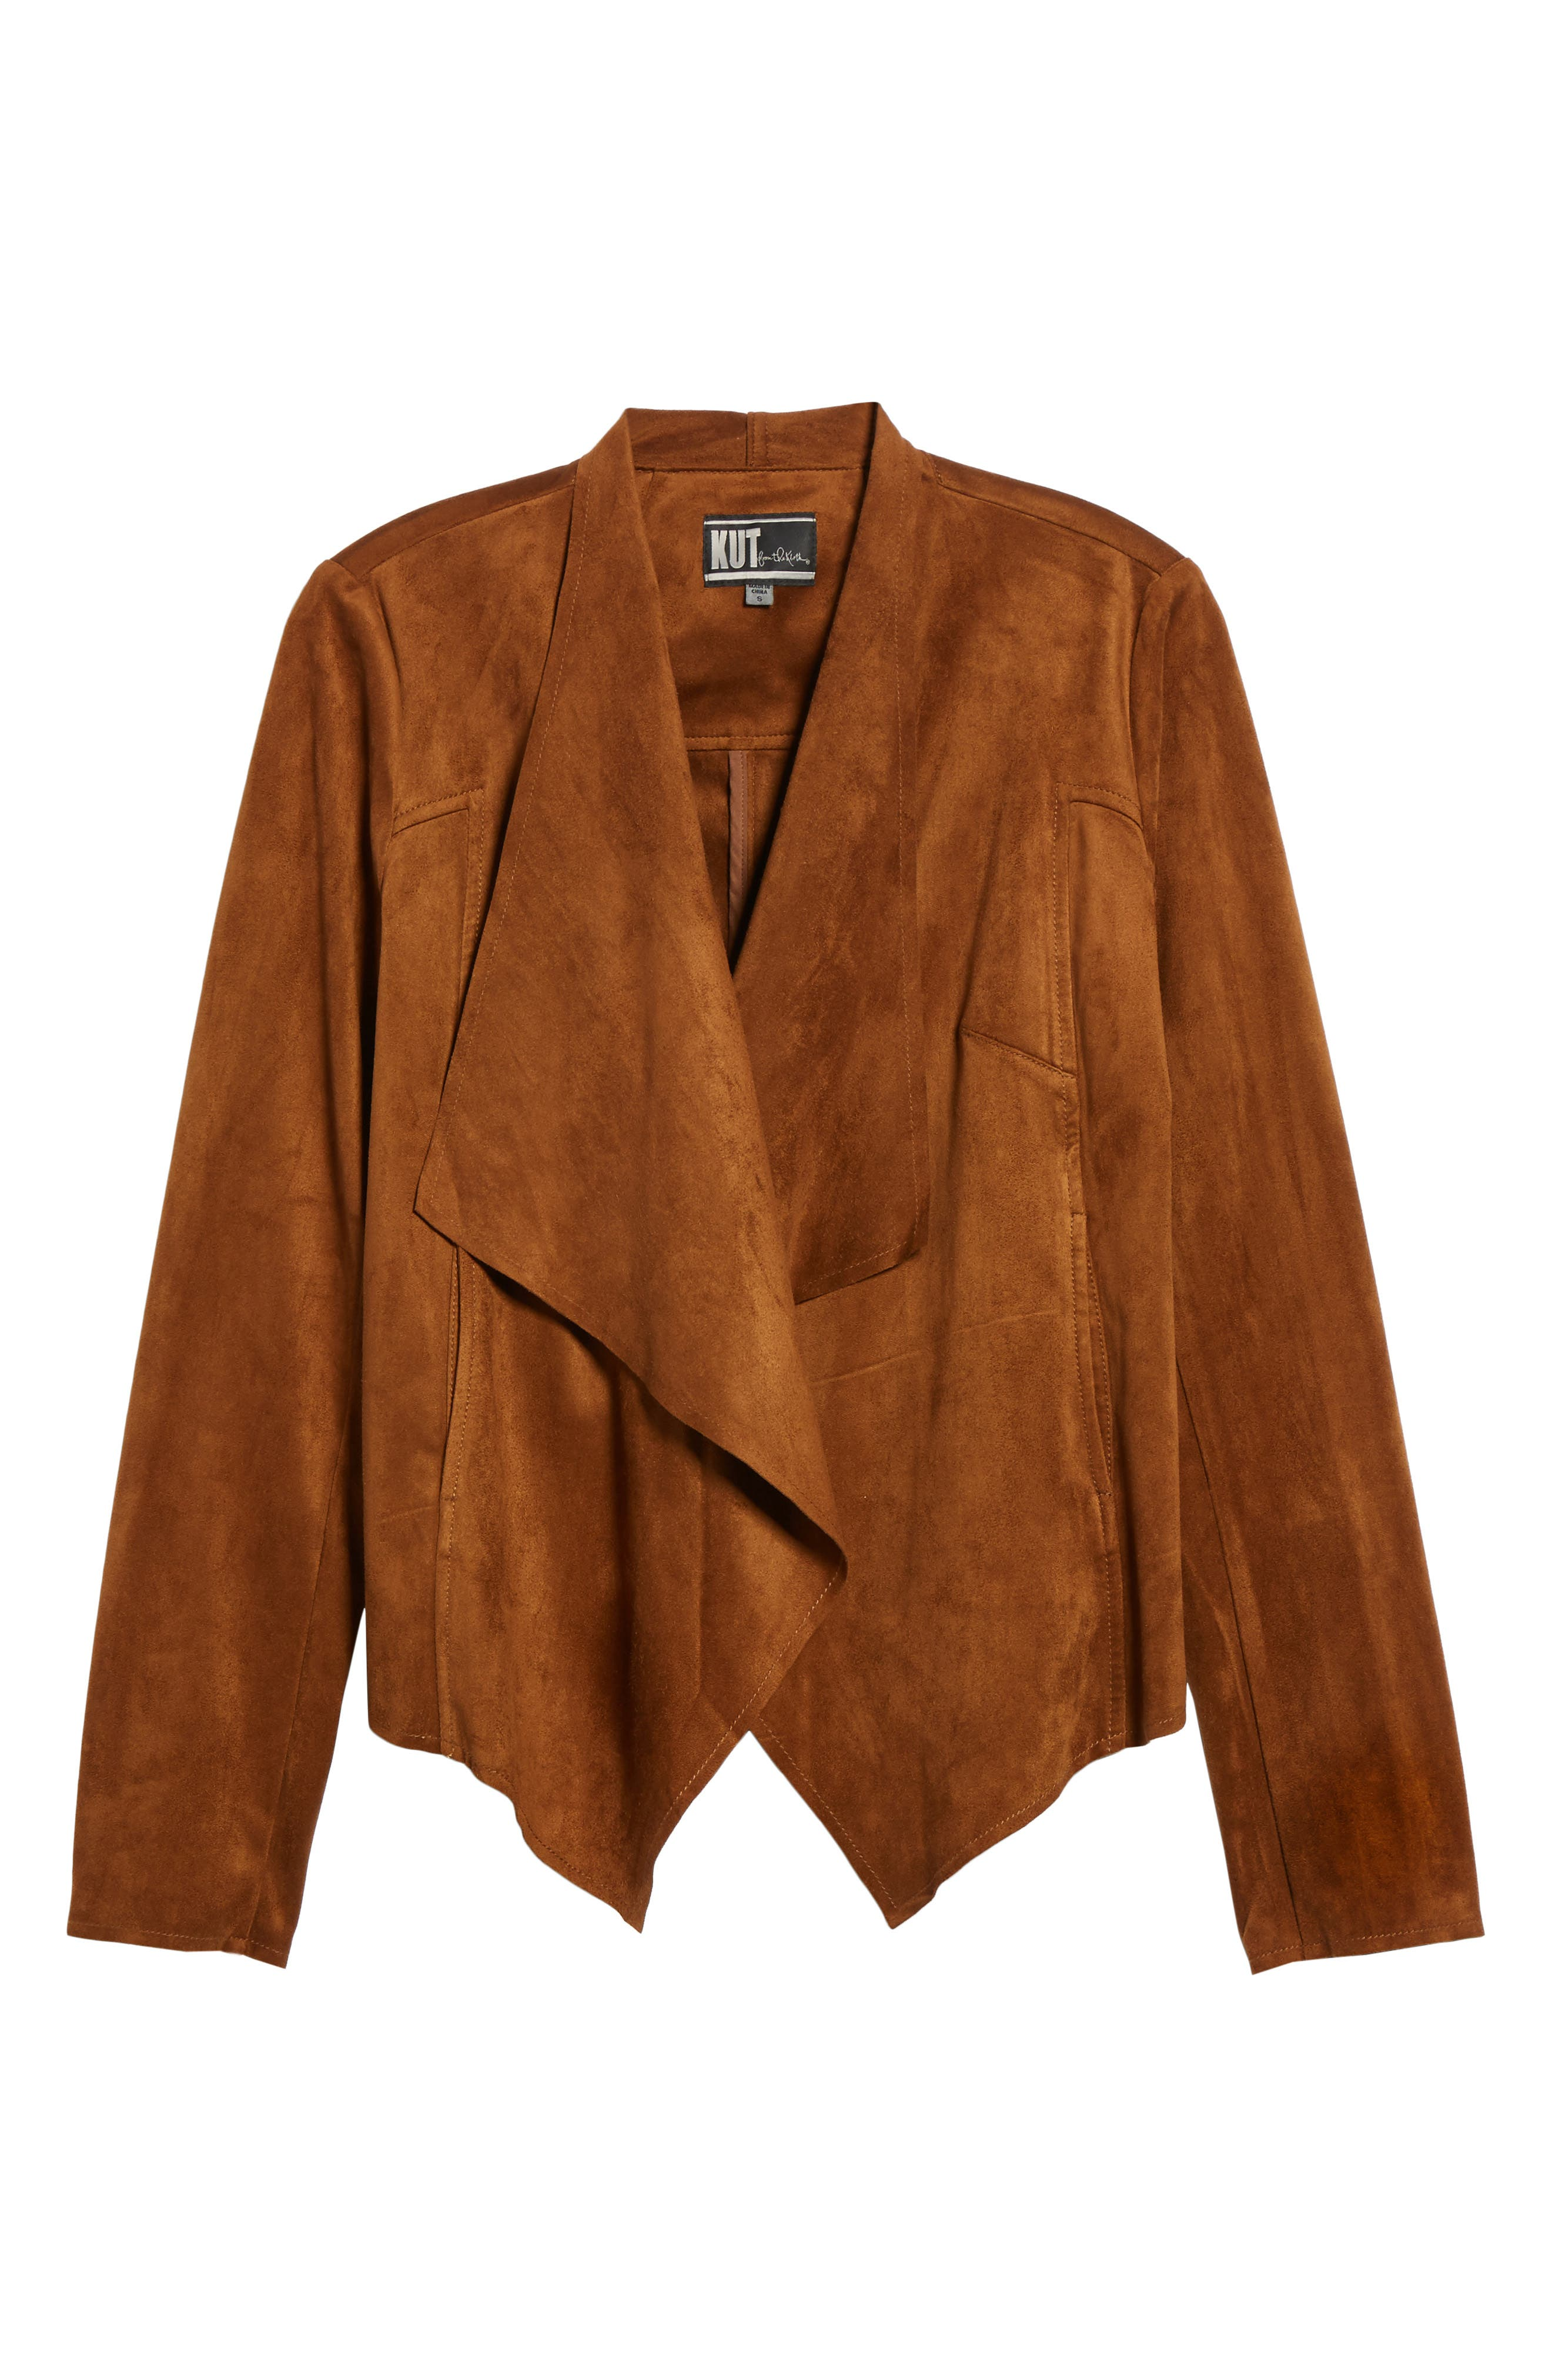 Main Image - KUT from the Kloth Tayanita Faux Suede Jacket